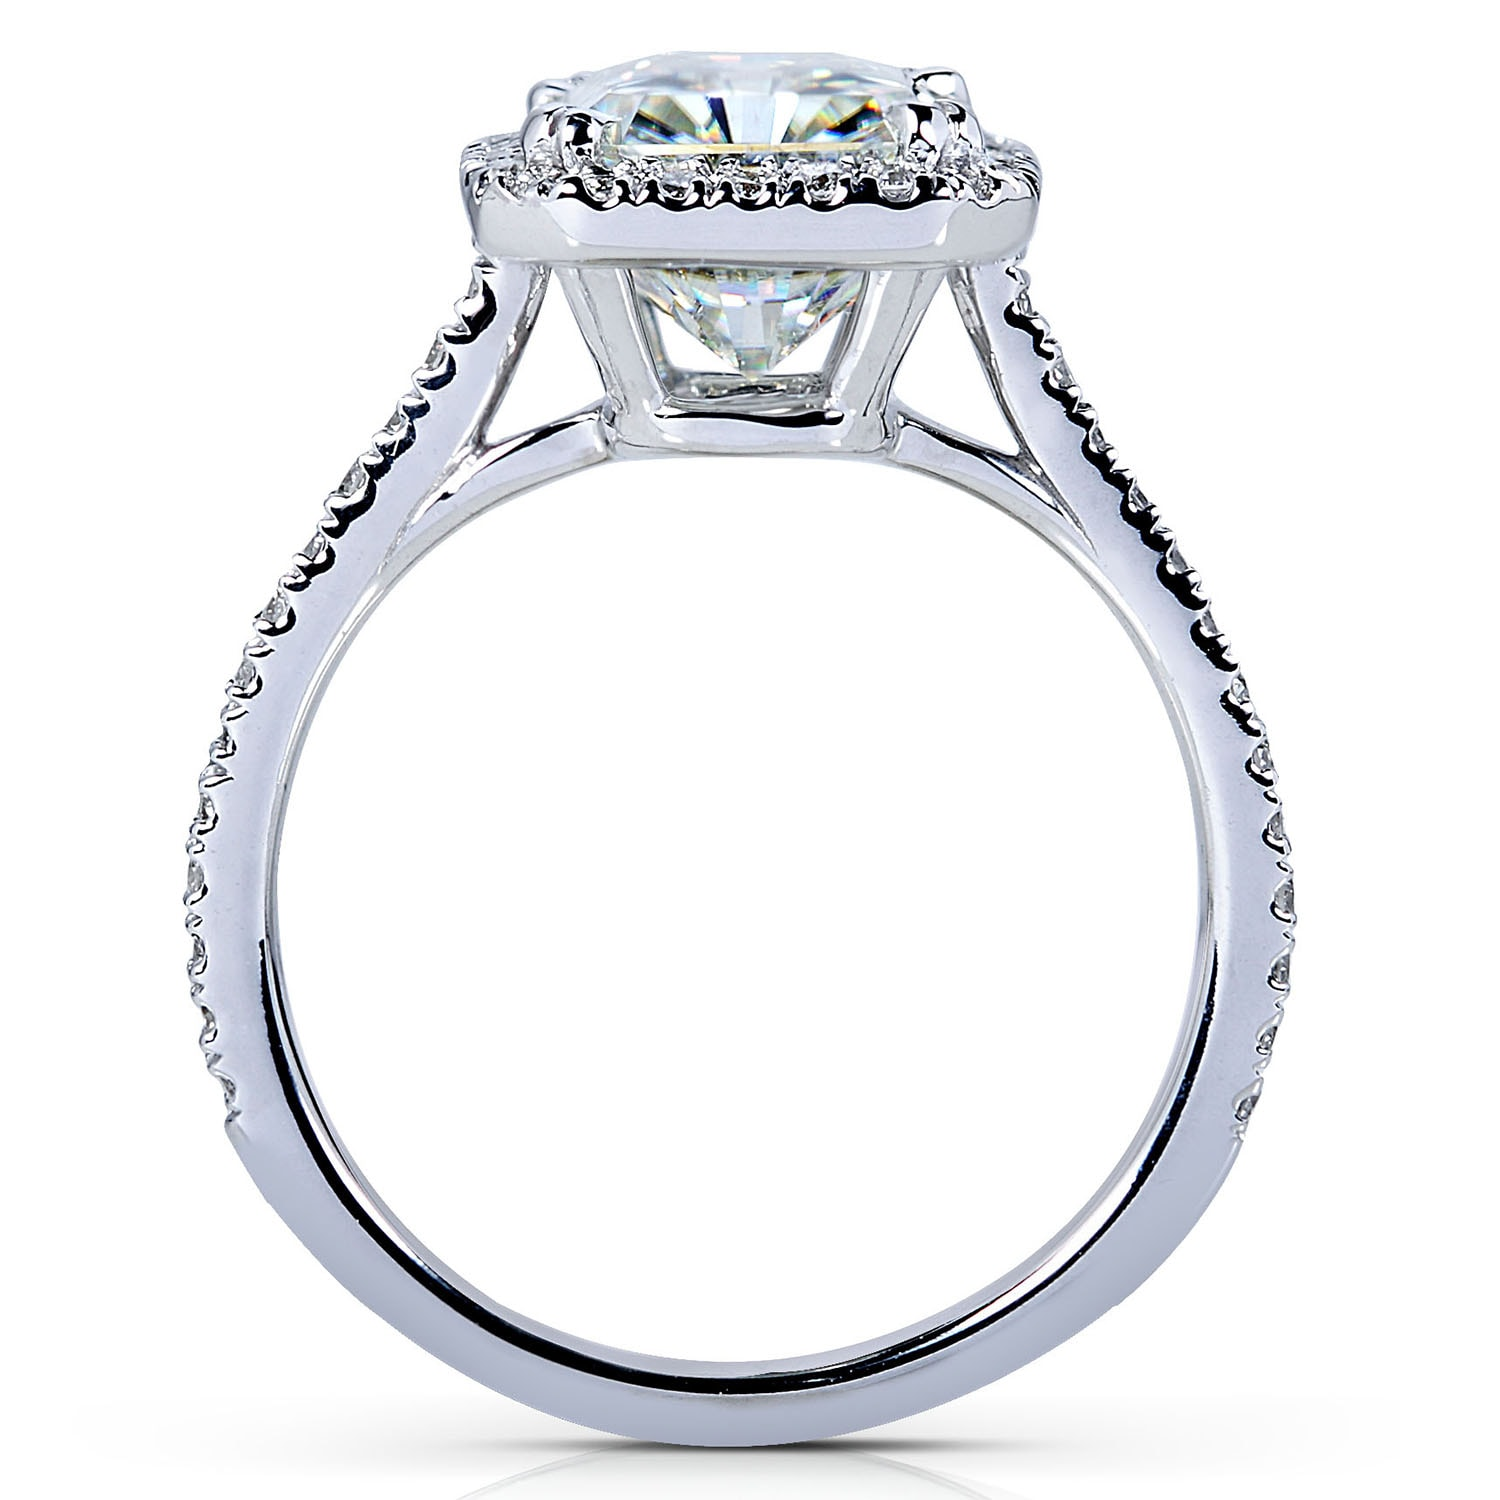 pin tonycollection engagement ring rings rectangular pinterest